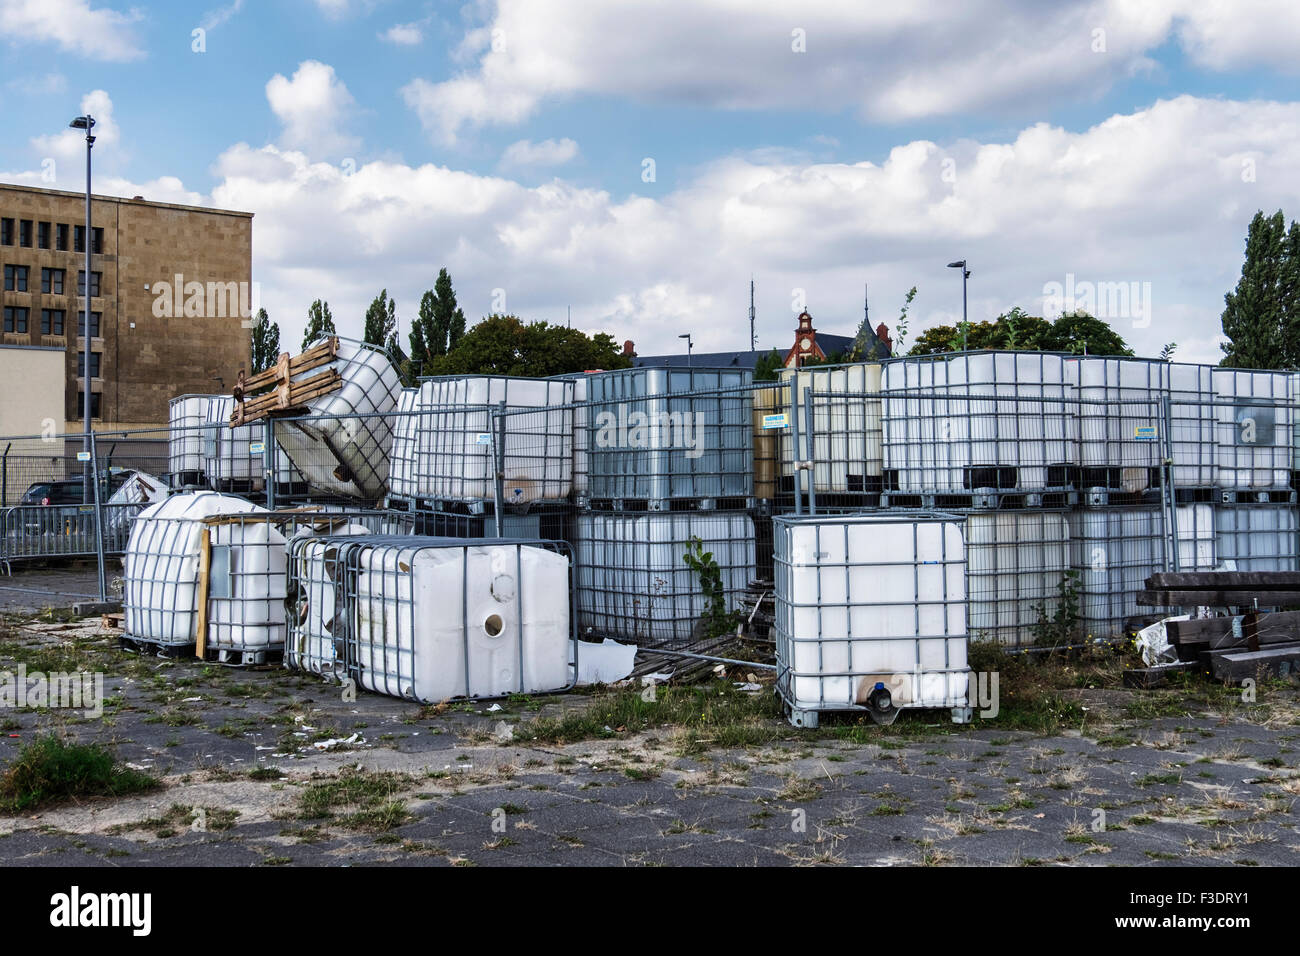 Berlin Tempelhof Airport, Flughafen - abandoned empty containers - Stock Image